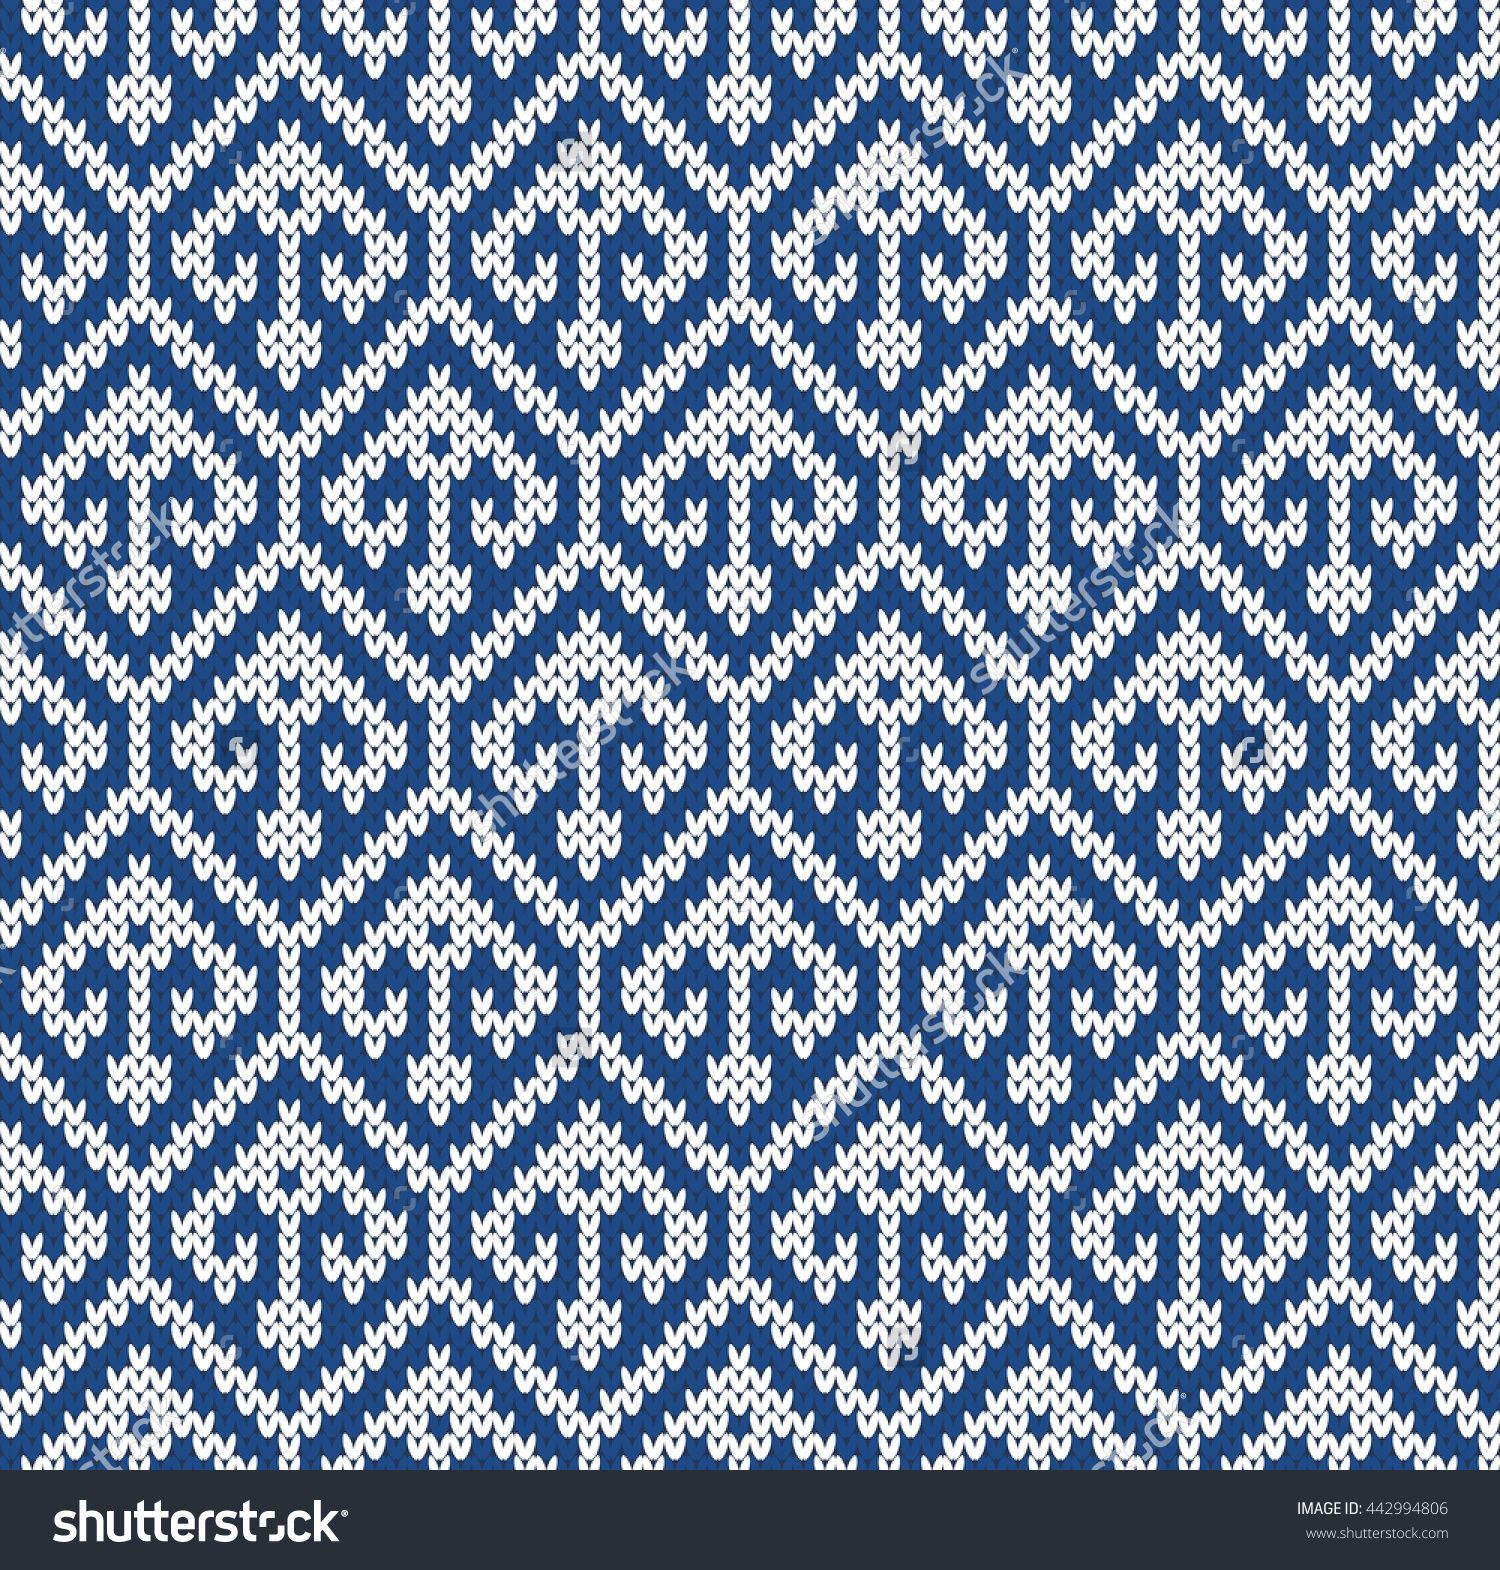 Image result for fairisle knitting patterns | Patterns&charts ...